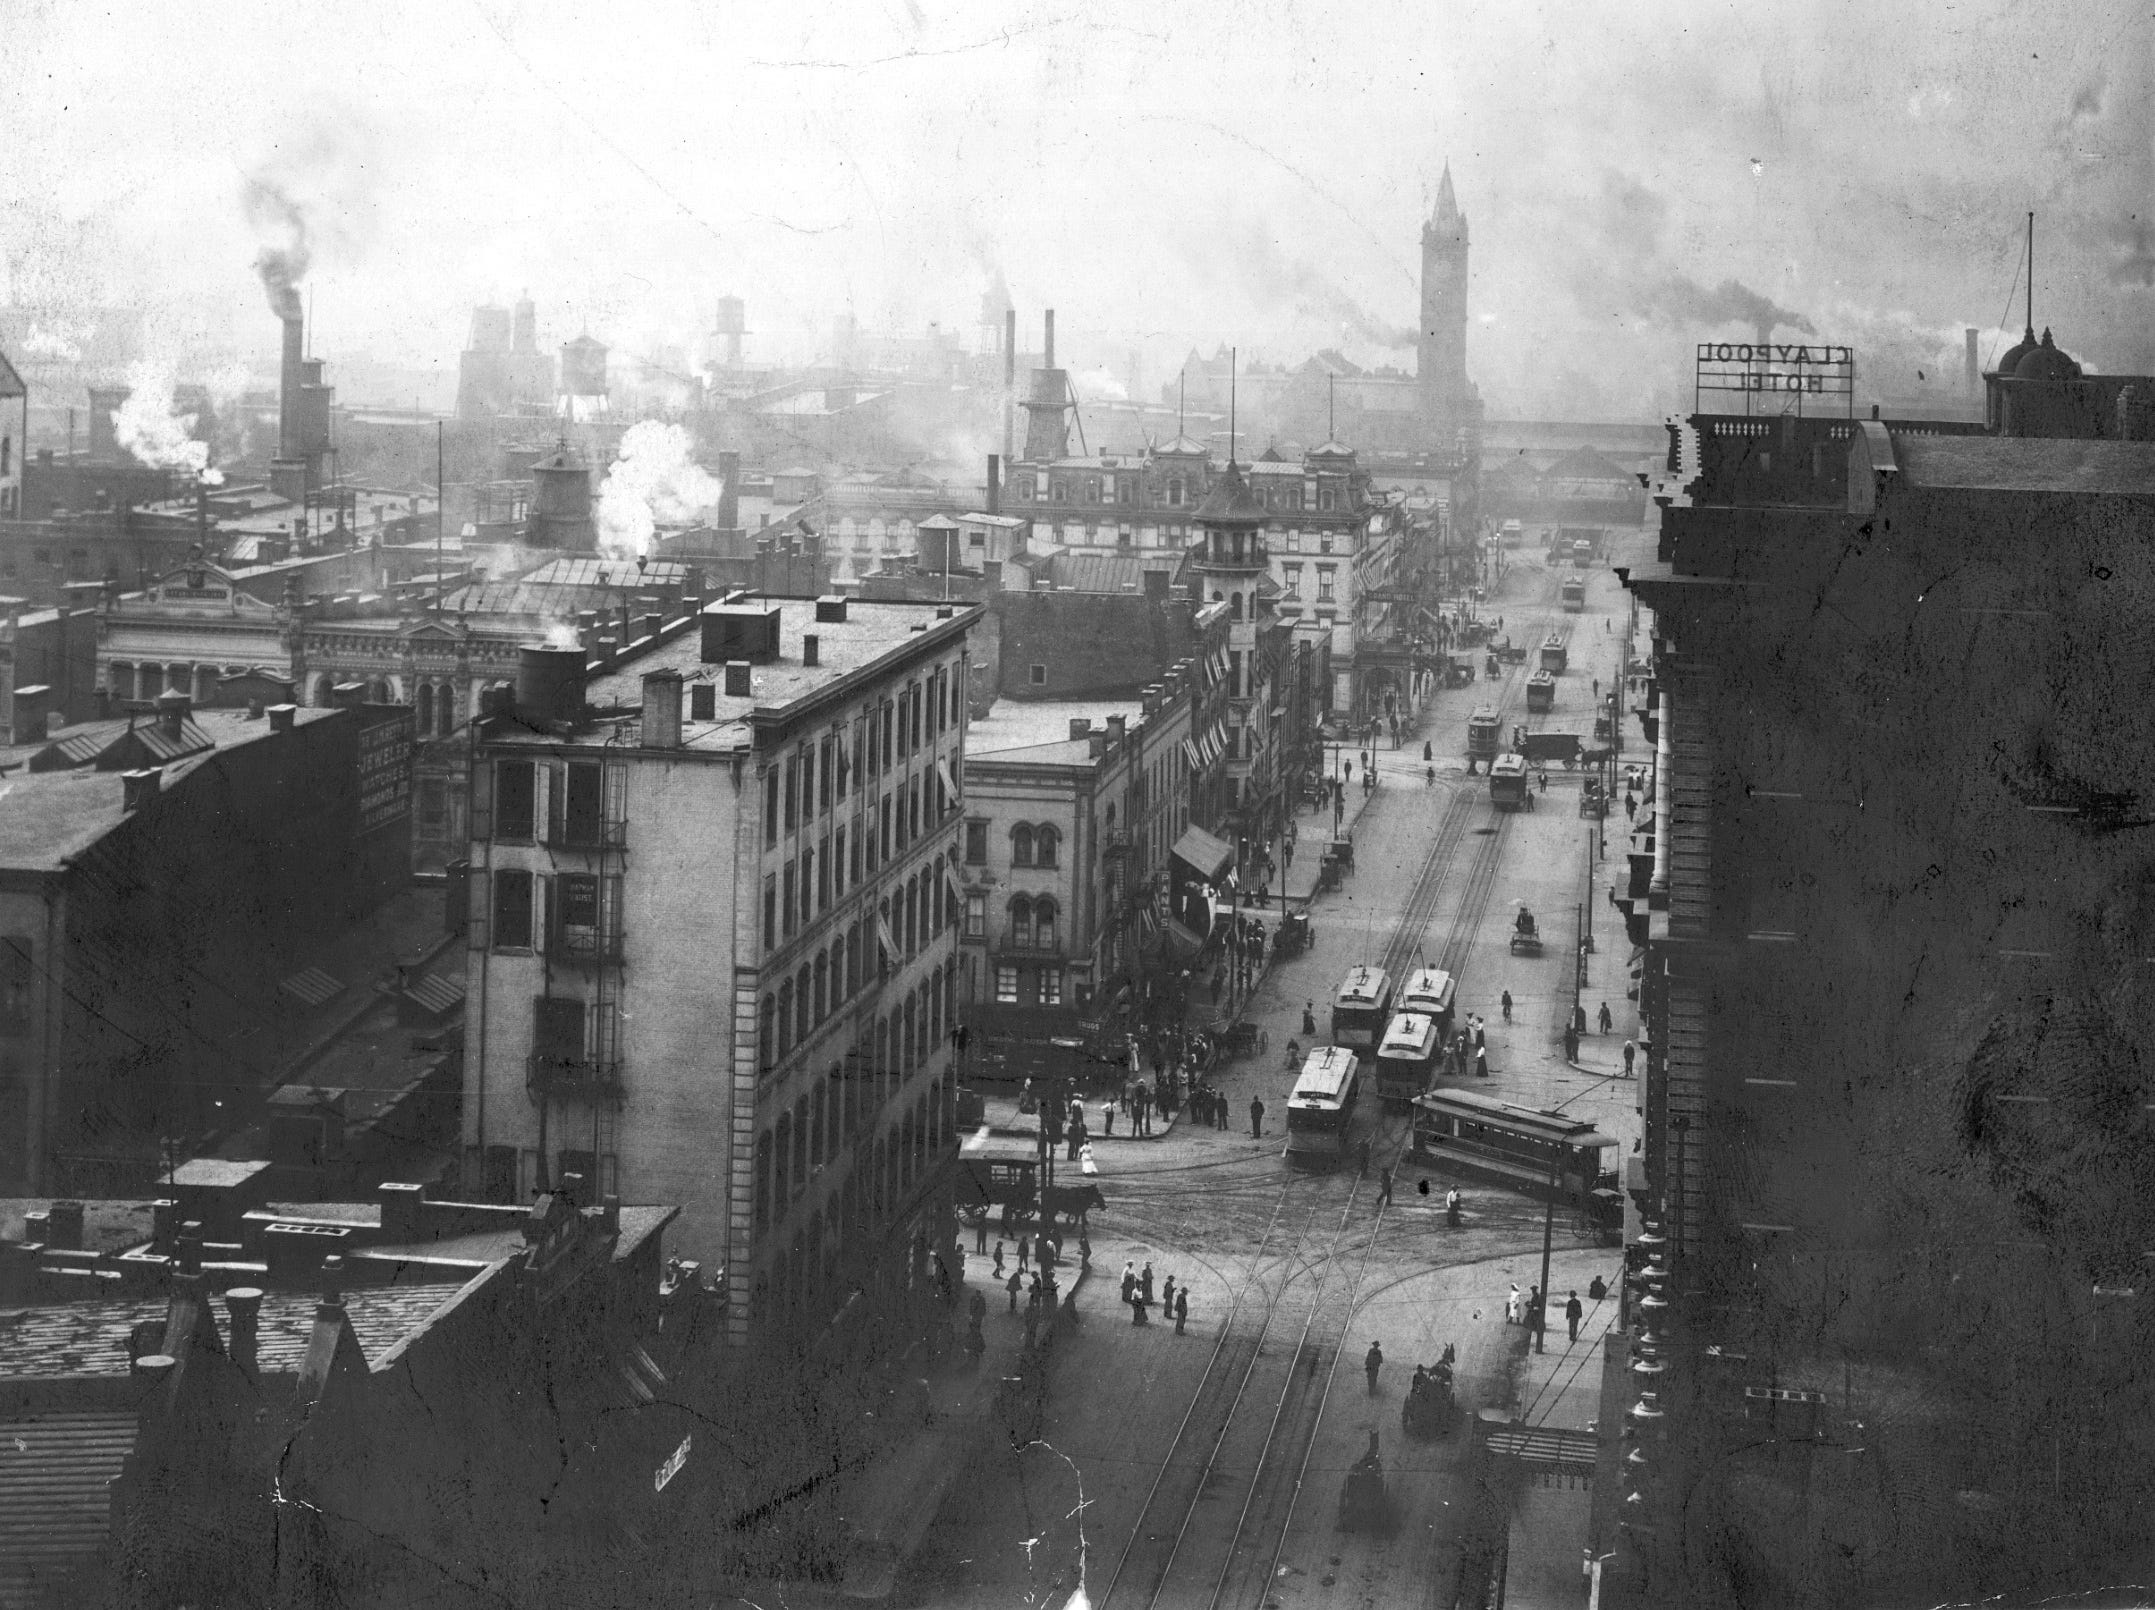 A busy thoroughfare today, Illinois Street was bustling just after the turn of the century, too. This 1905 view is looking south toward Union Station (background) from the Washington Street intersection. The Grand Hotel is the light-colored building on the southeast corner of Ilinois and Maryland, one street south of Washington Street. The Claypool Hotel, built in 1903 at Washington and Illinois Streets, is at right in the foreground.